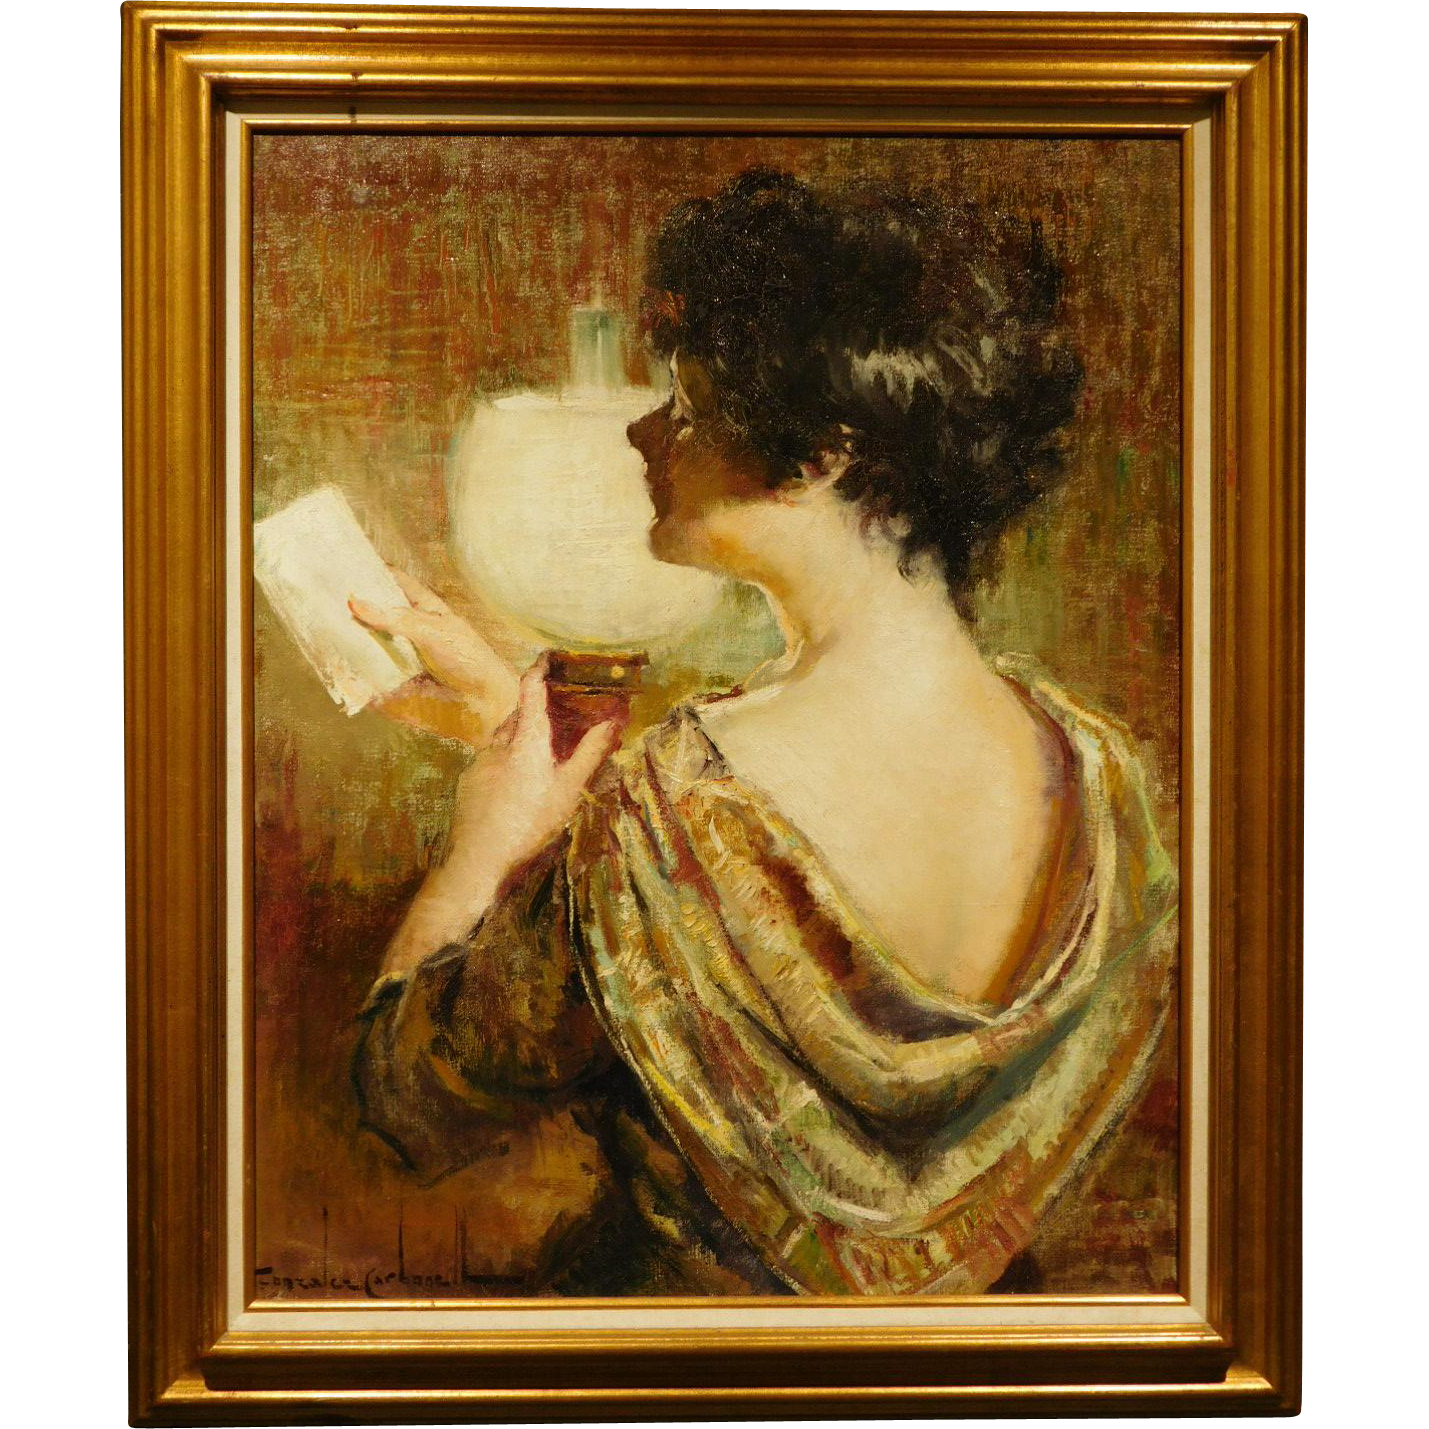 Woman Reading with Lamp, Oil Painting by Carbonell from Woodshed Gallery on RubyLane.com